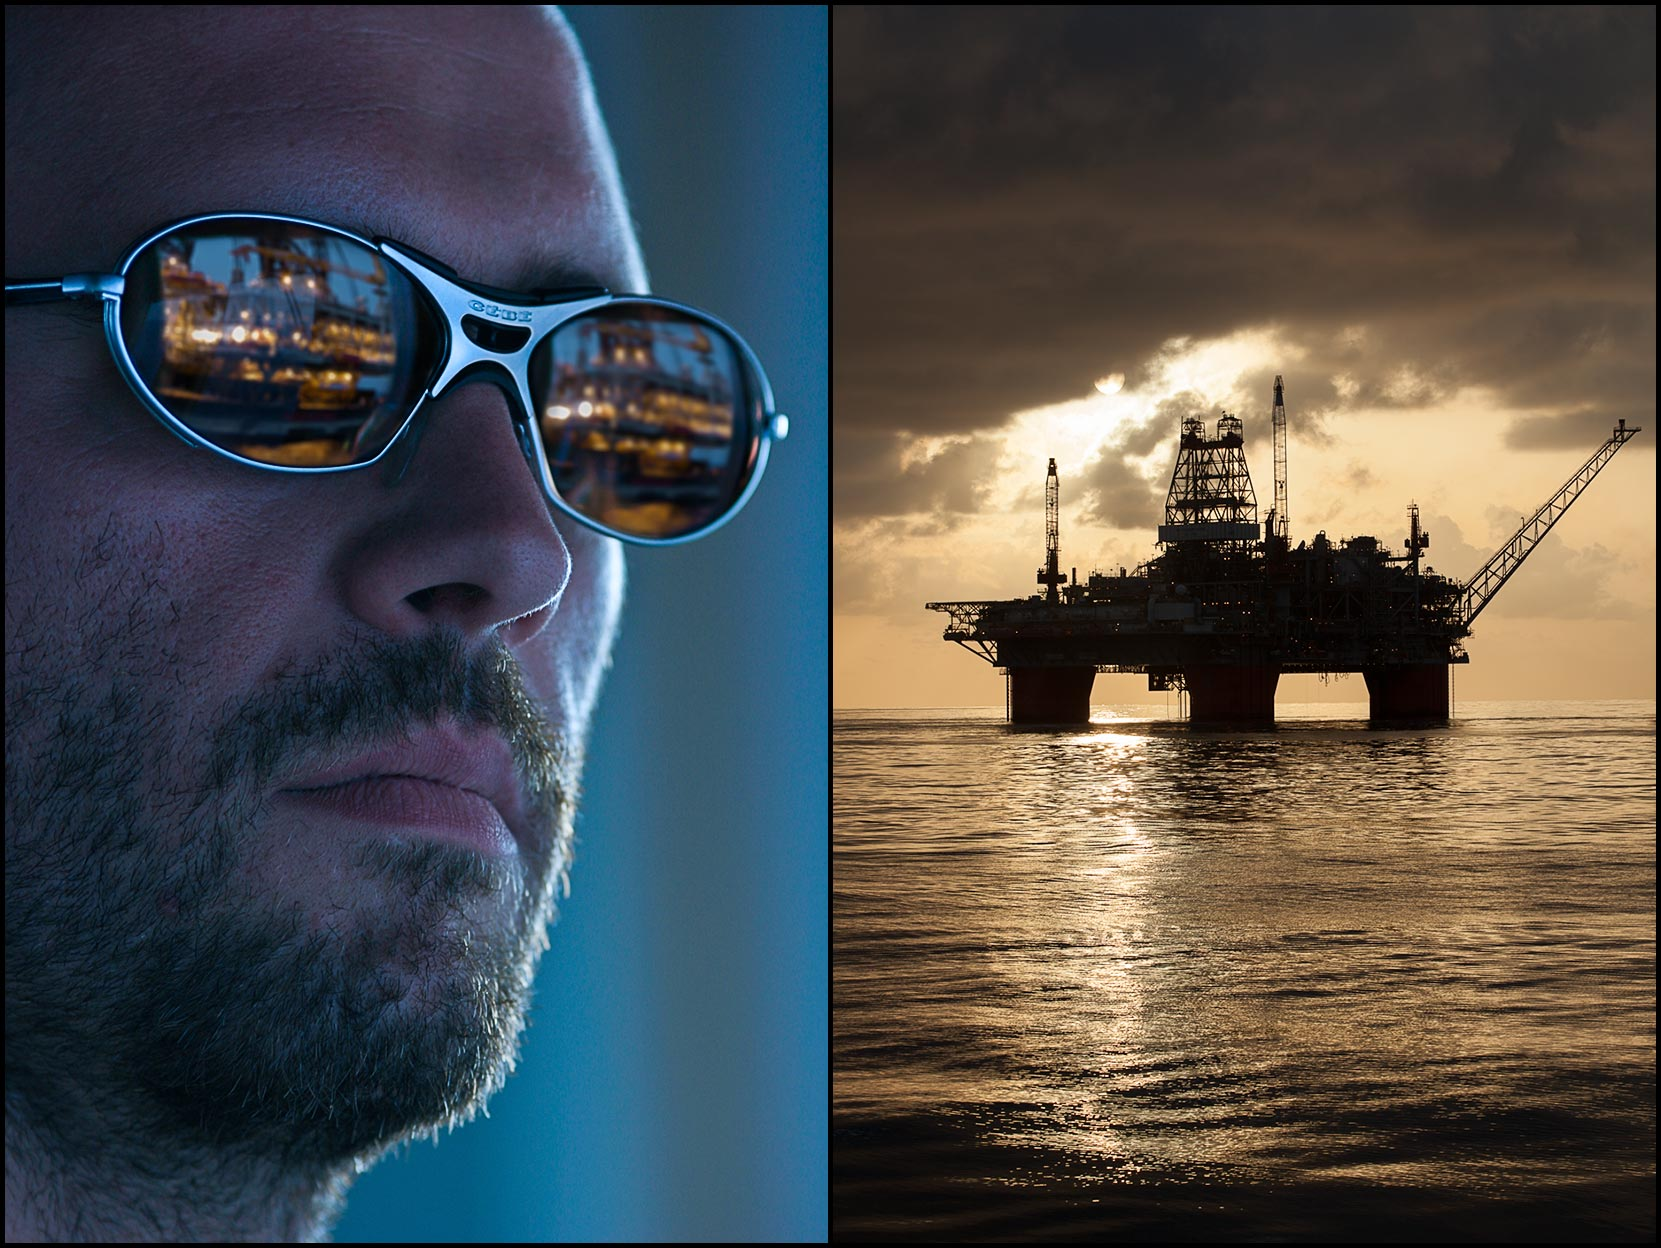 A first mate wears sunglasses that reflect an offshore rig in the lenses (R), A silhouette of a deepwater oil rig in the Gulf of Mexico (R).